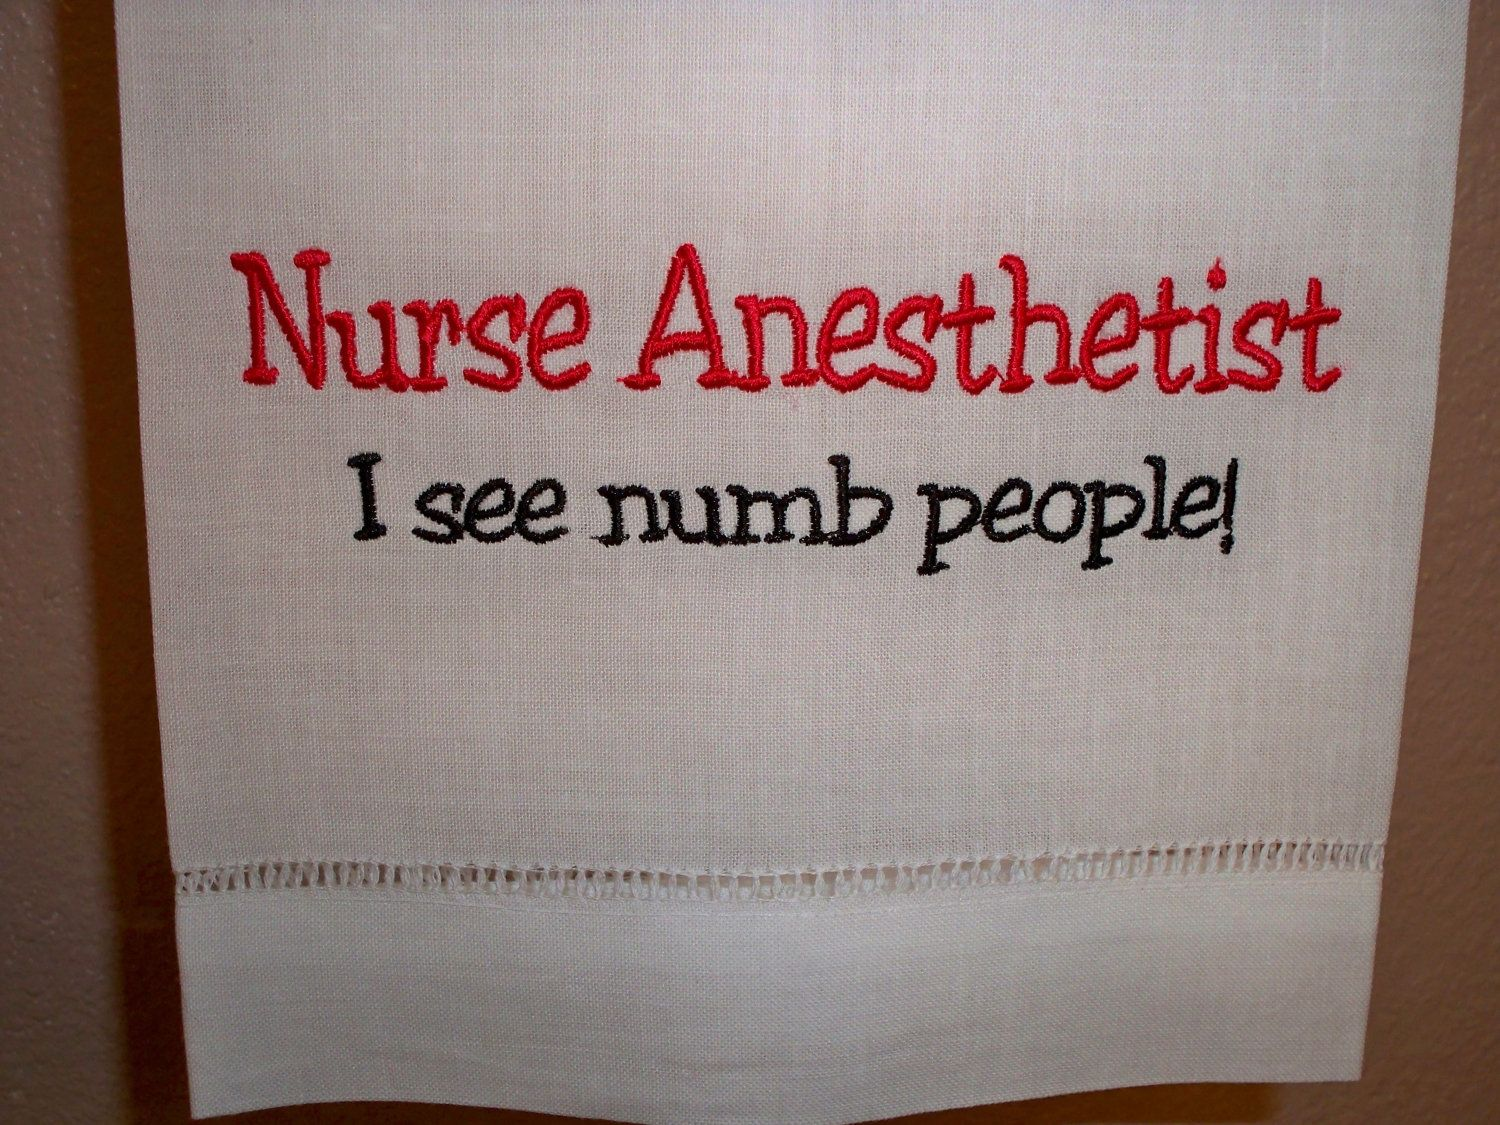 Nurse anesthetist sees numb people what i do for a living yes nurse anesthetist sees numb people xflitez Images